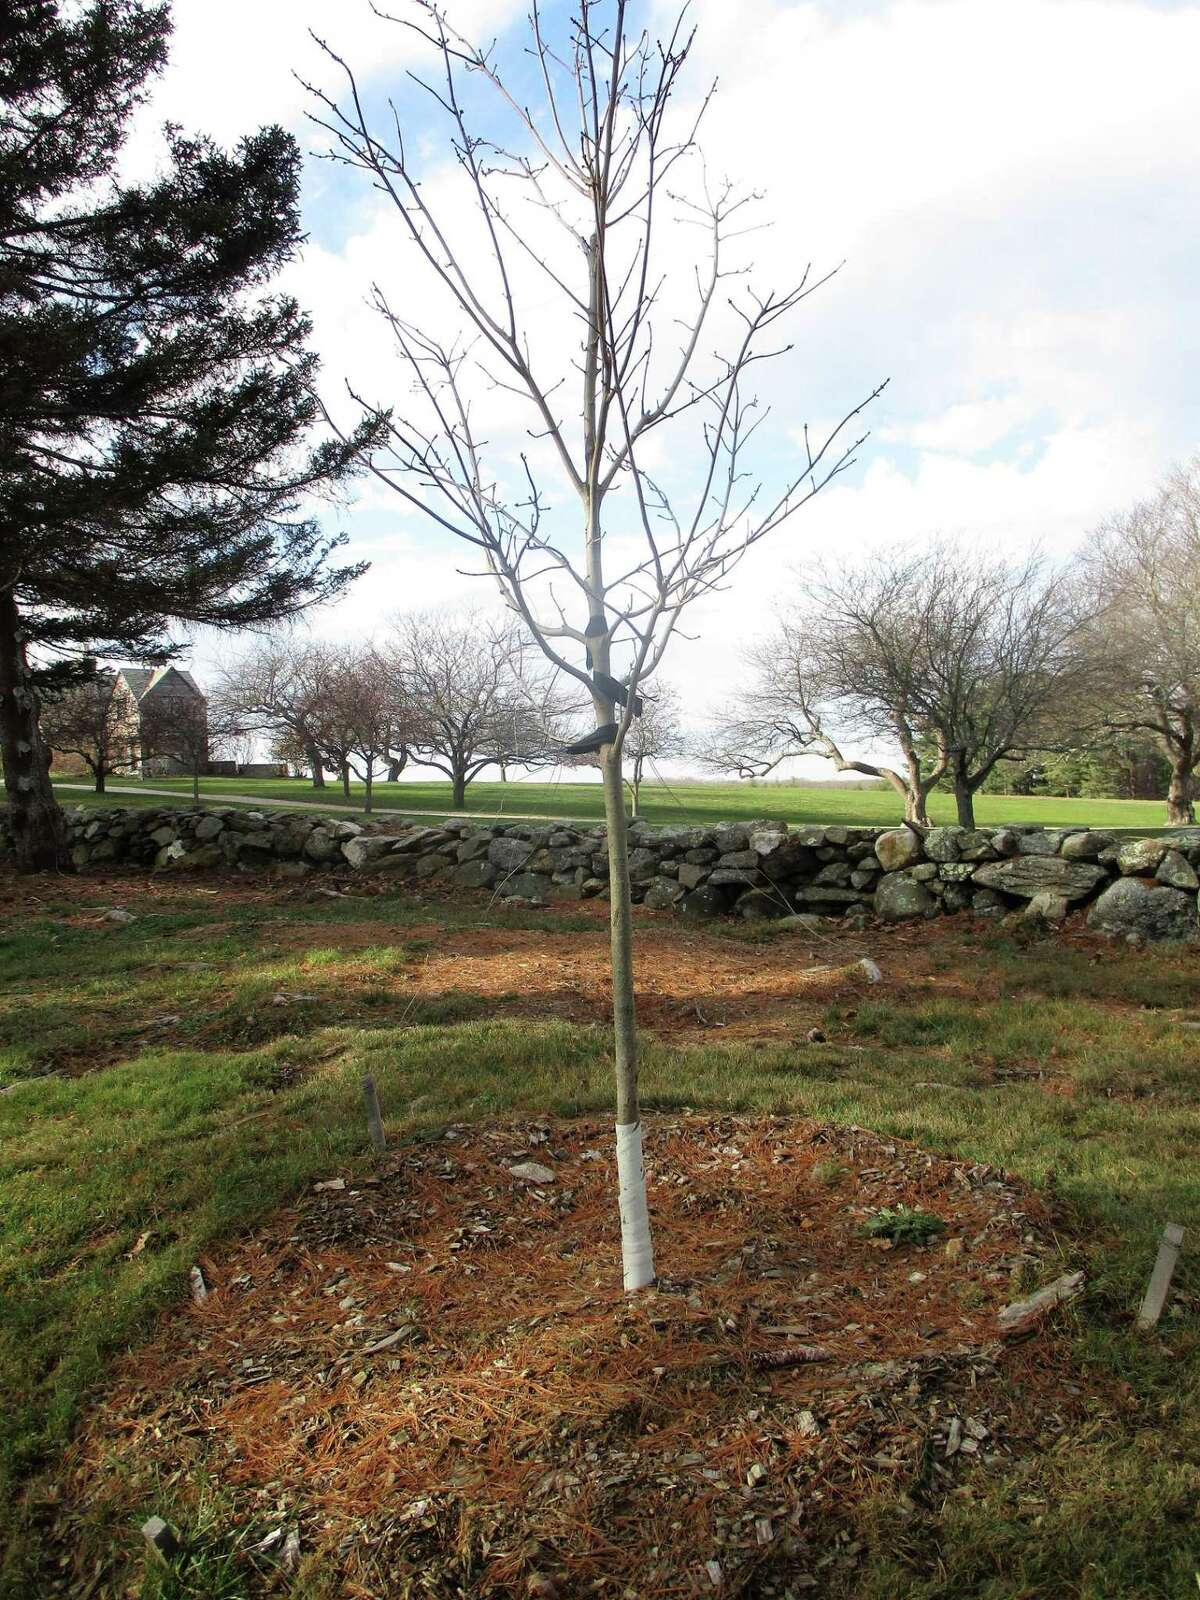 One of the newly planted replacements at Topsmead in Litchfield, an apple tree, is already budding.